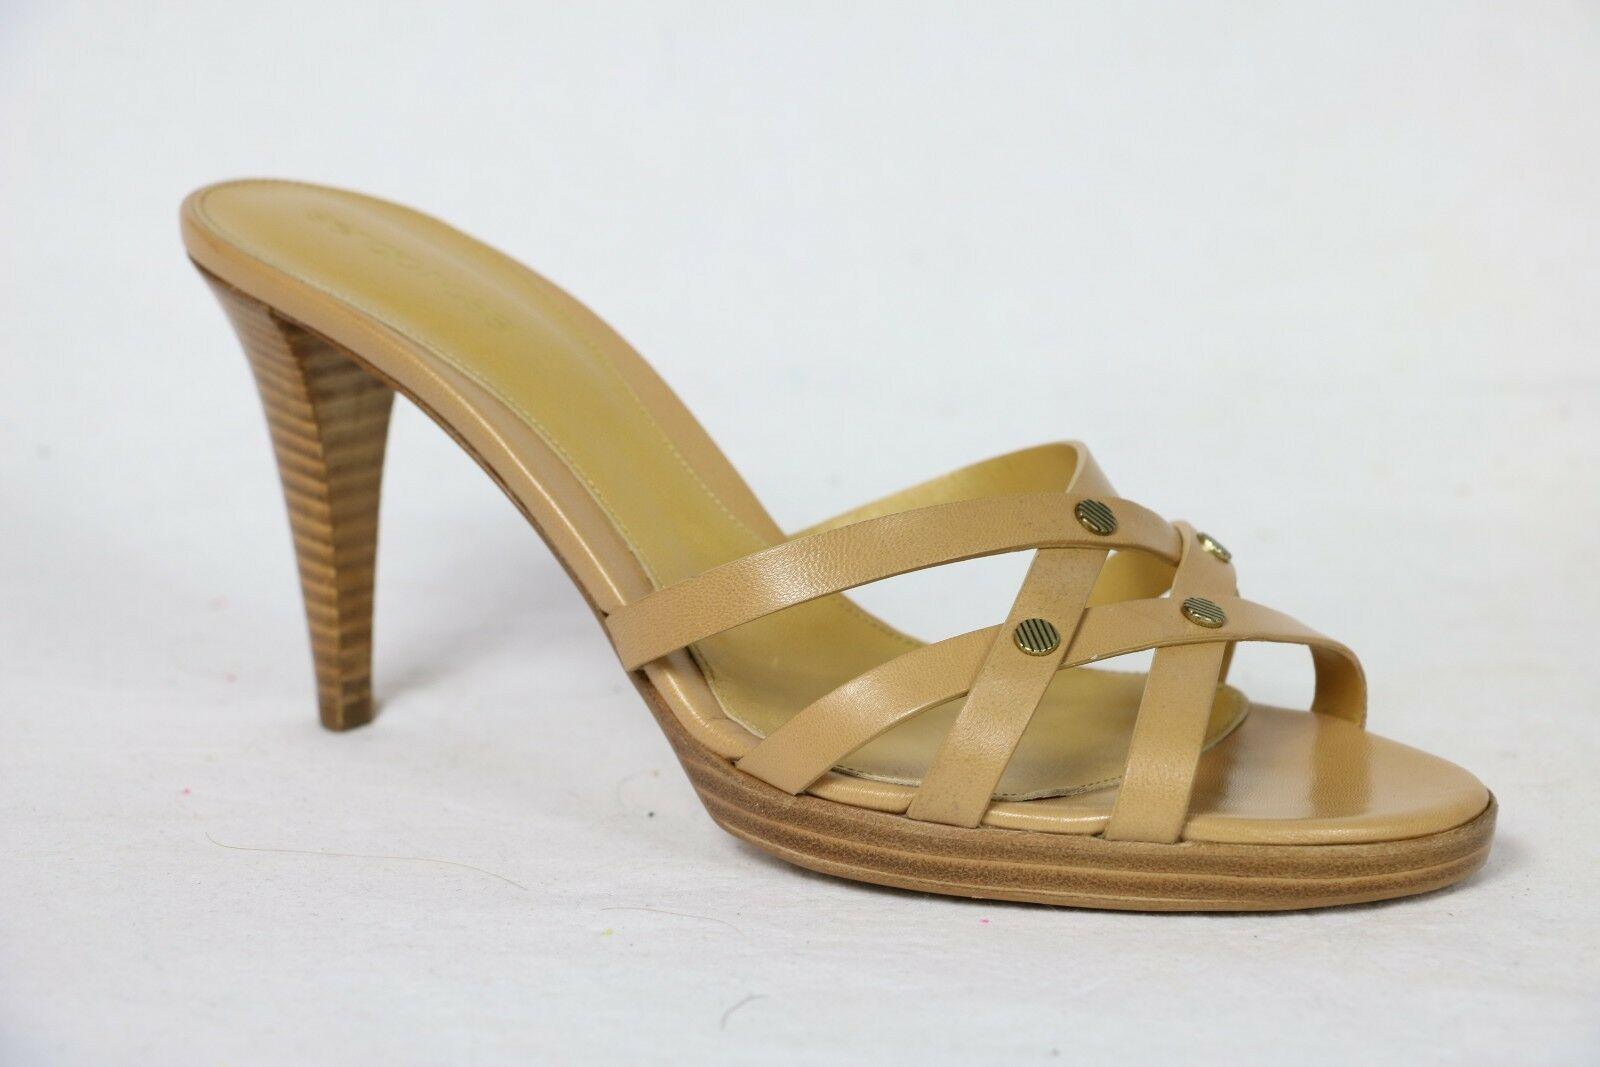 Sergio Rossi schuhe platform heels heels pumps tan leather leather leather 10 40 45f86f